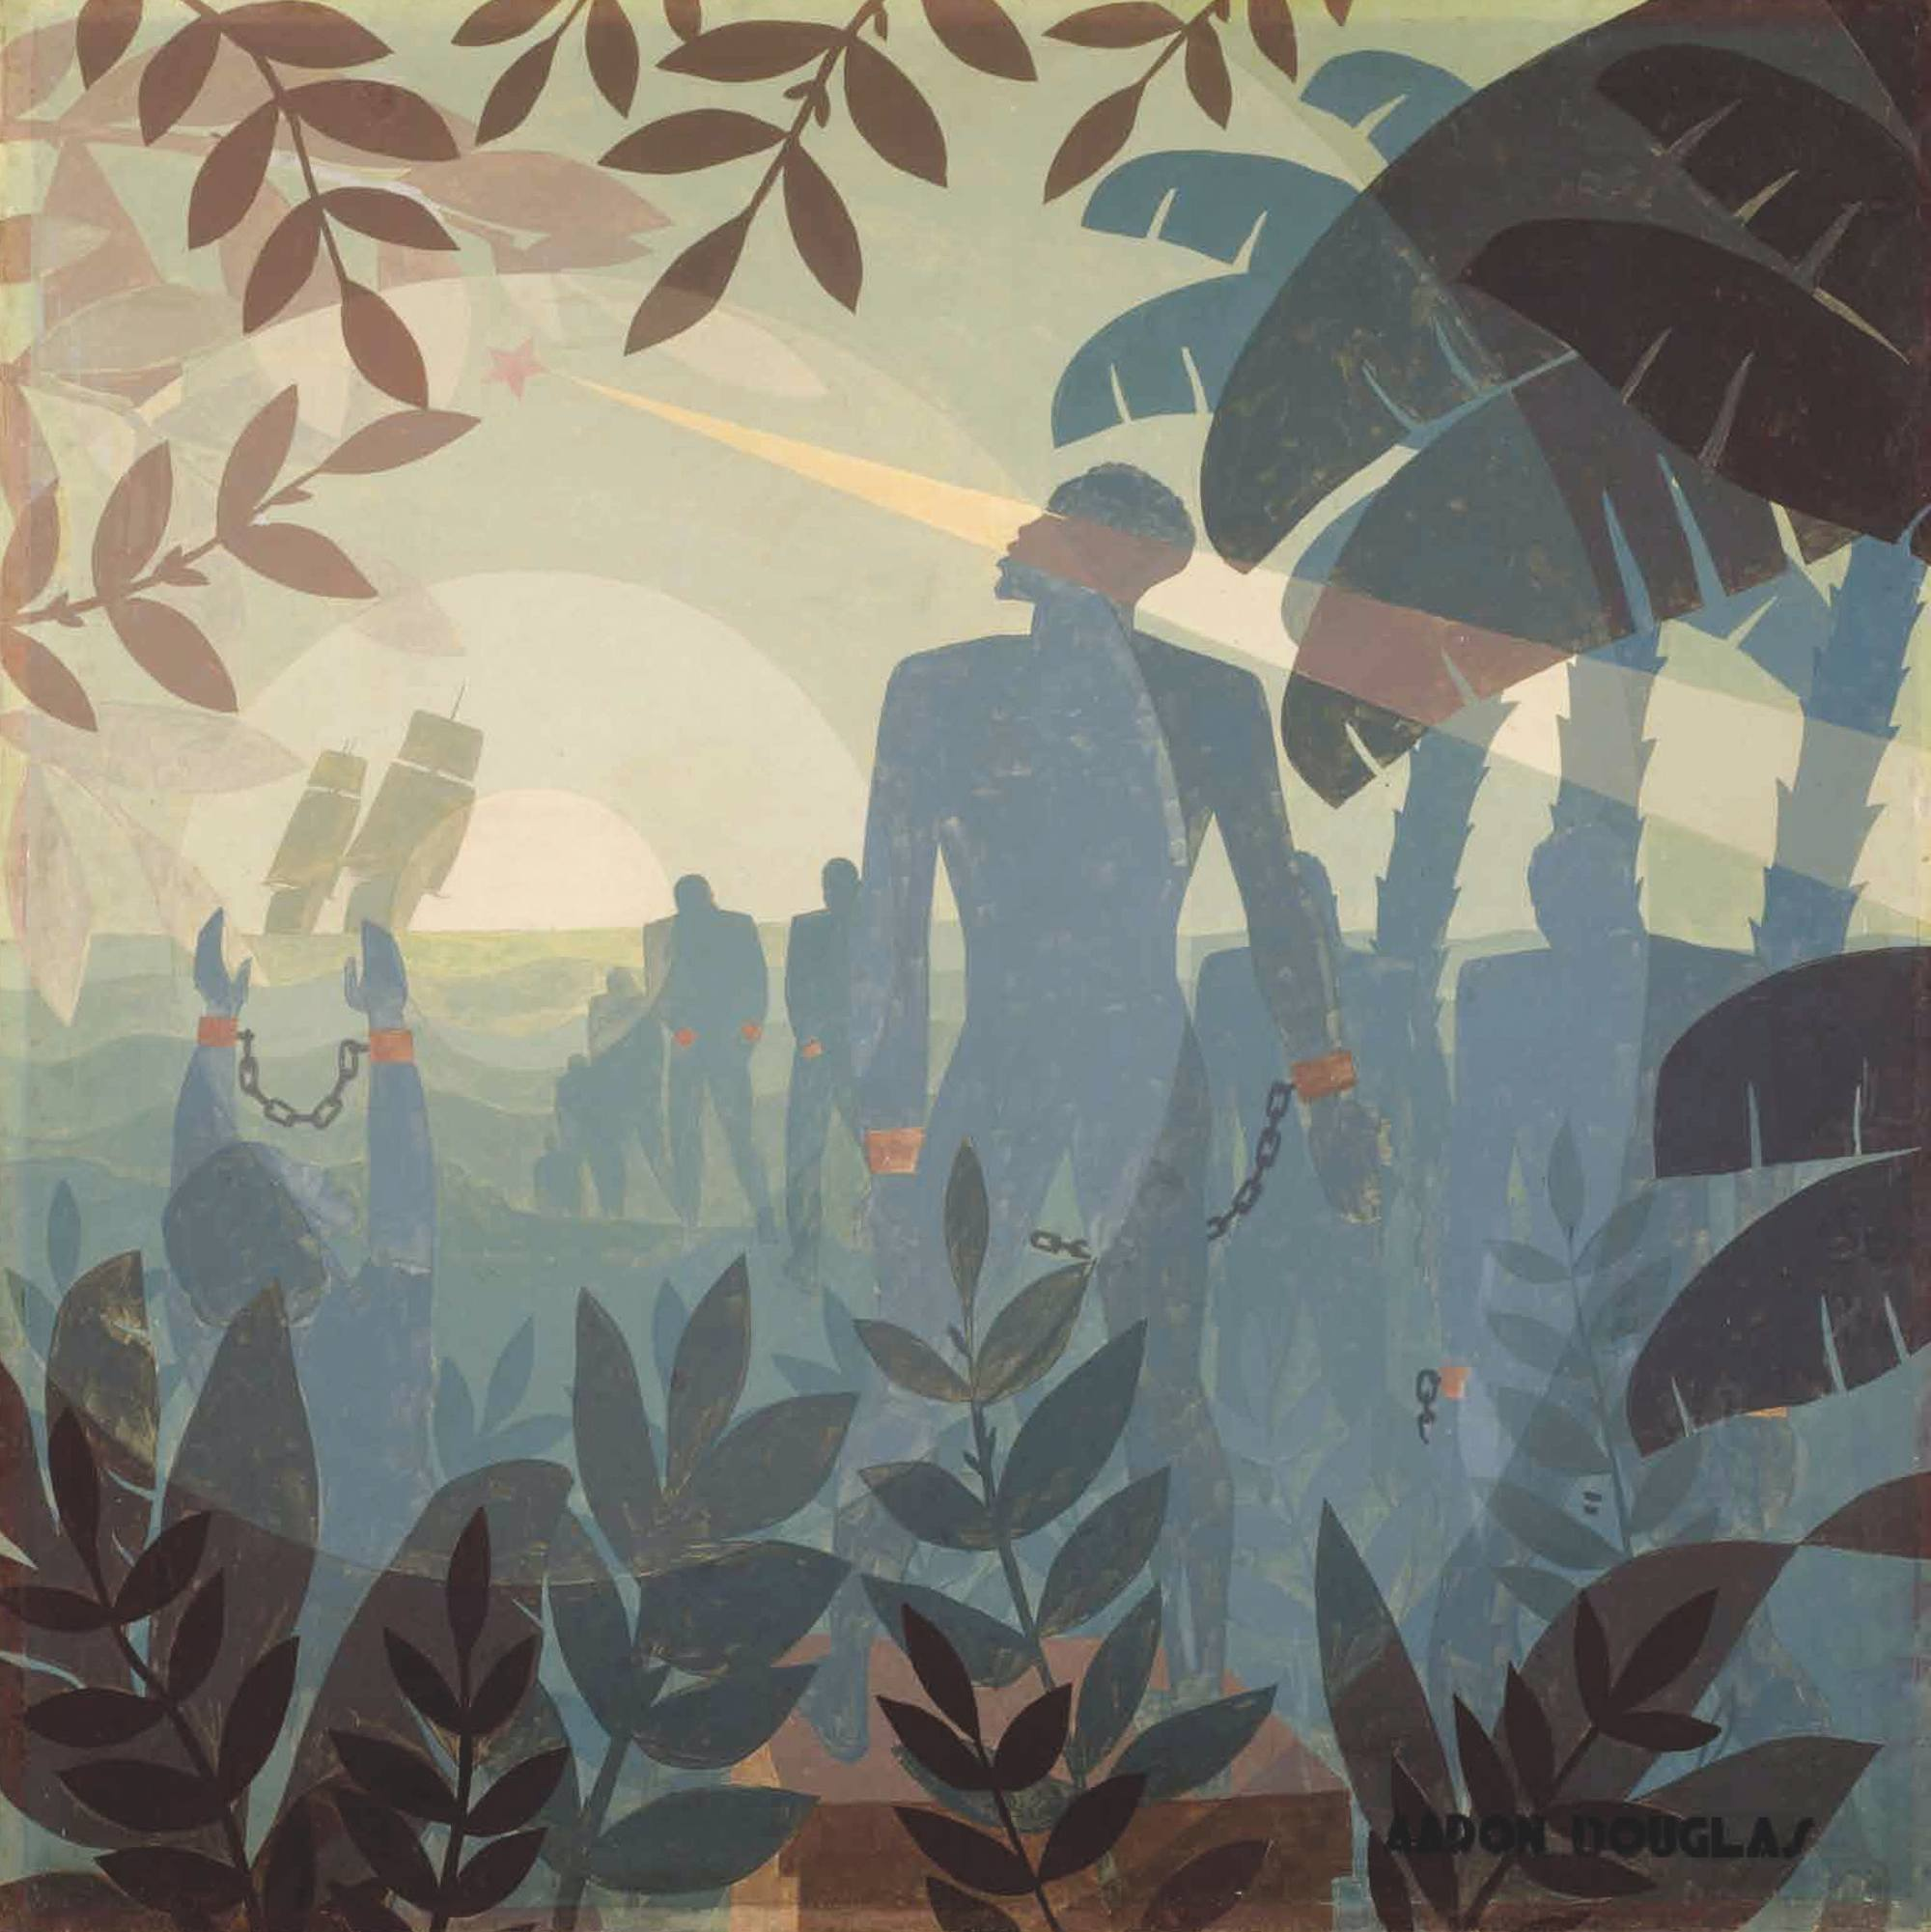 Aaron Douglas, Into bondage, 1936, huile sur toile, 153 × 154 cm, National Gallery of Art, Washington, États-Unis.